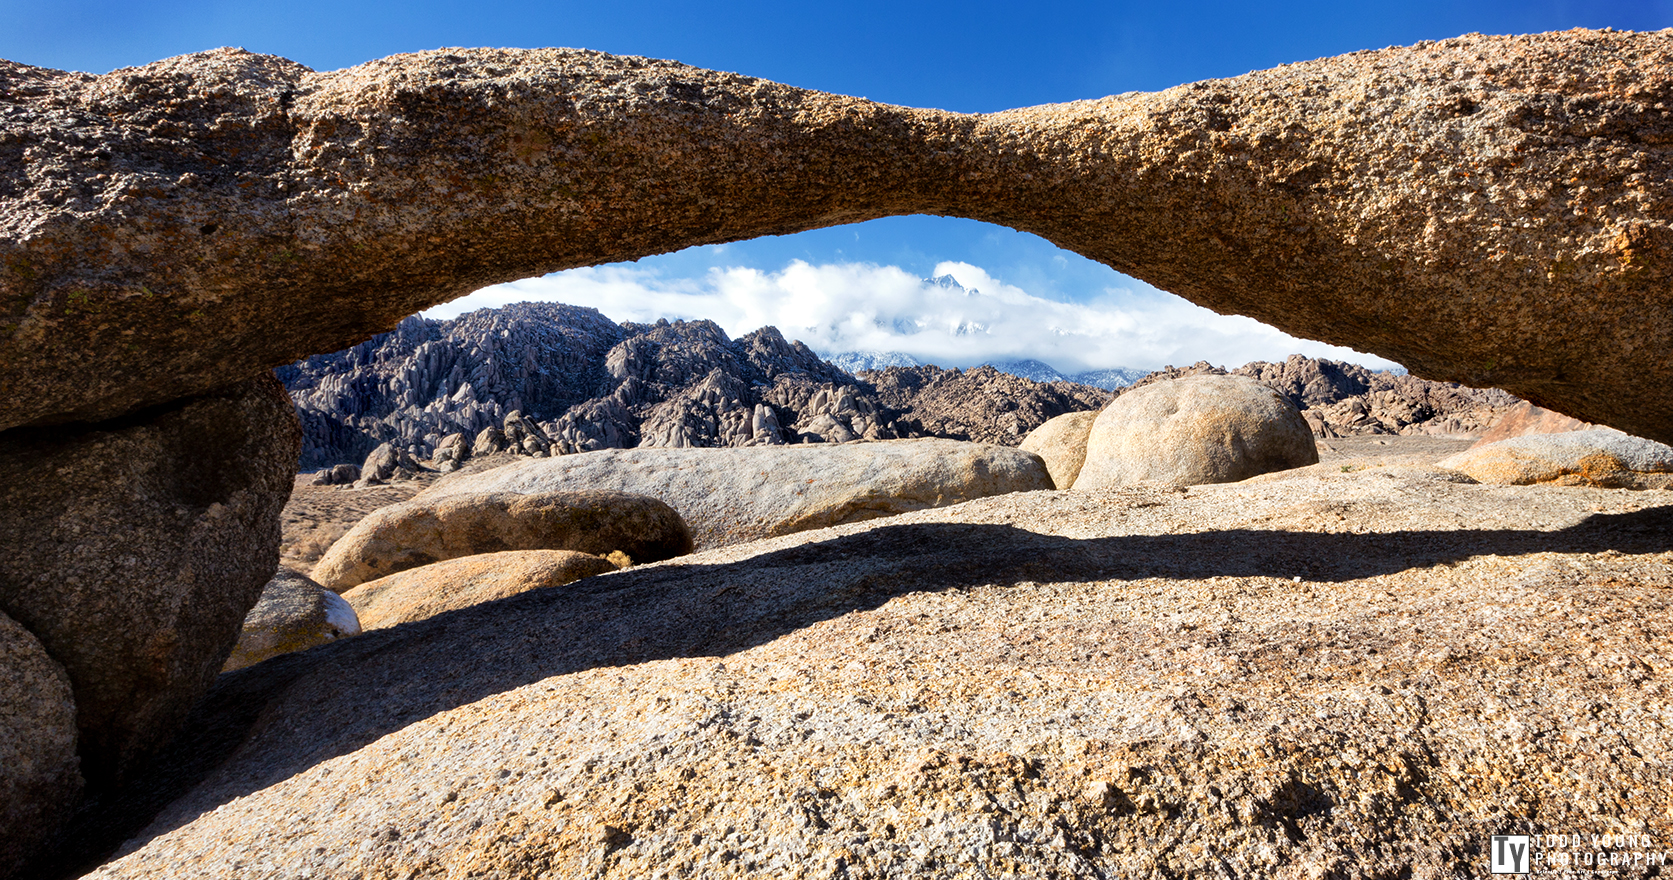 Lathe Arch - Alabama Hills - January 2014